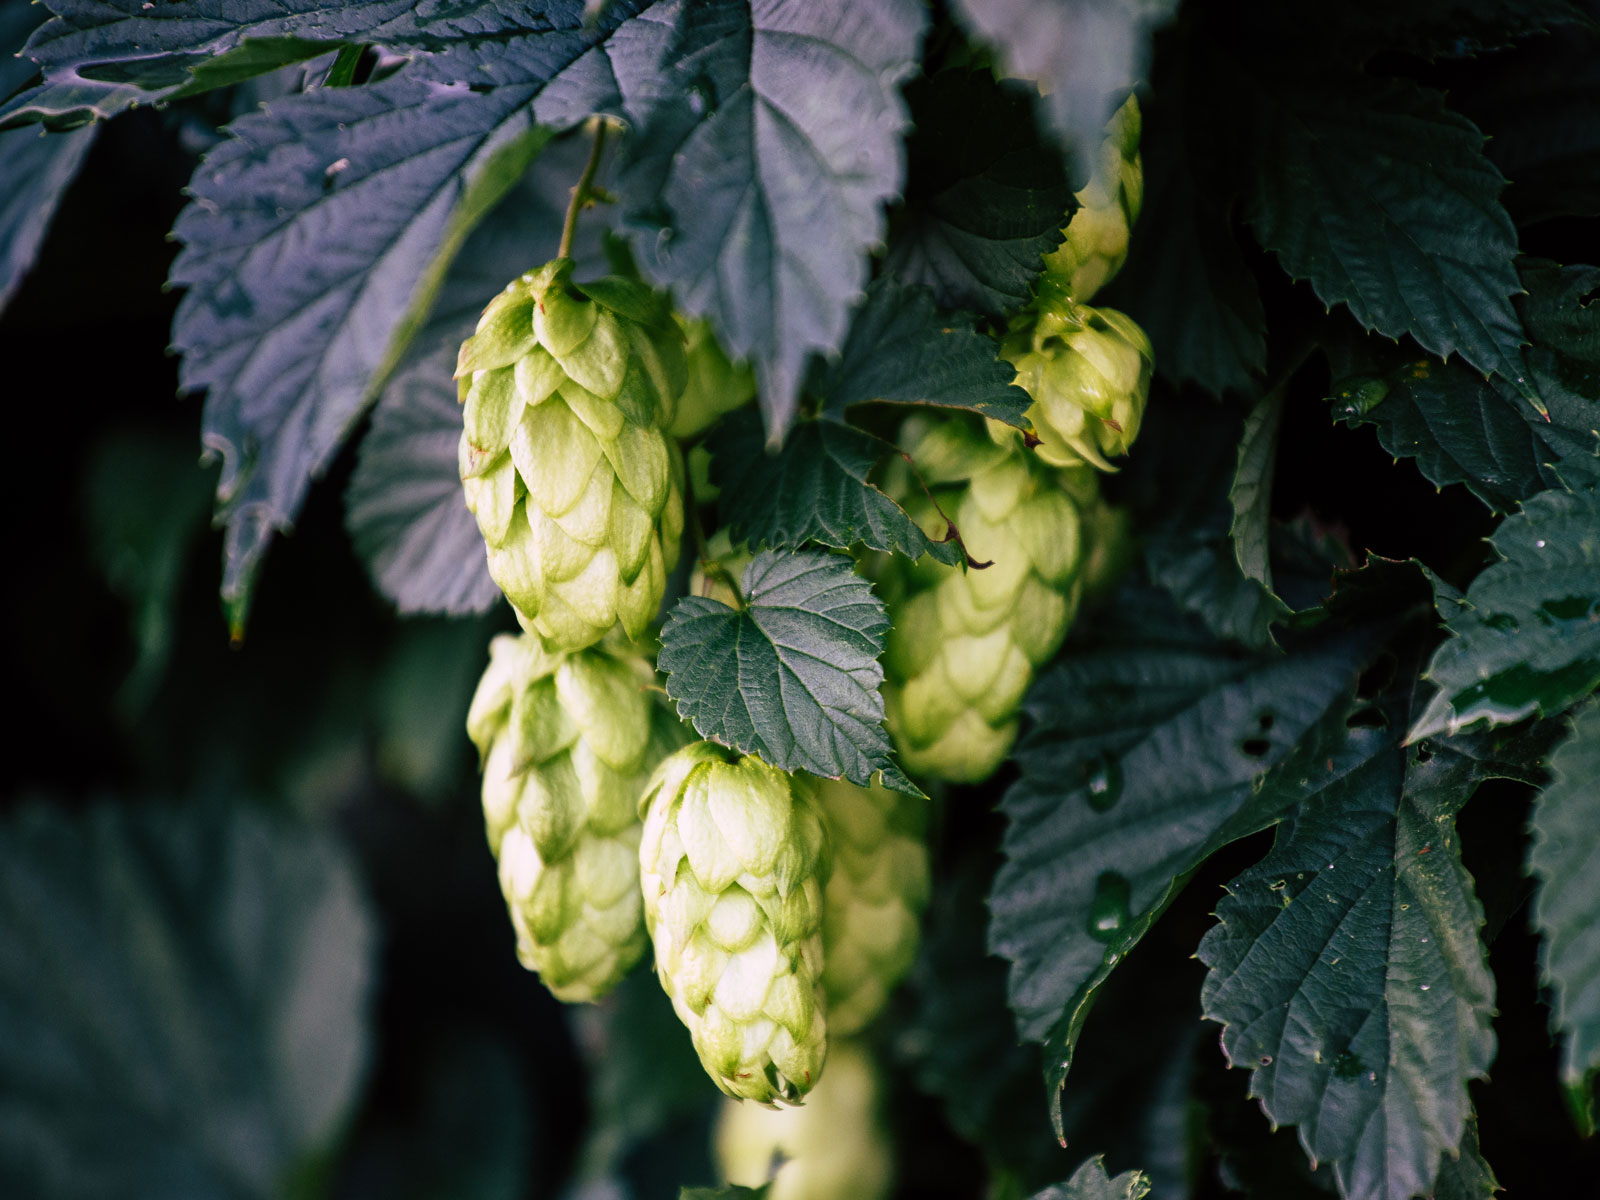 New Zealand Invests $8 Million to Develop 'Unique Kiwi Hops' for Beer